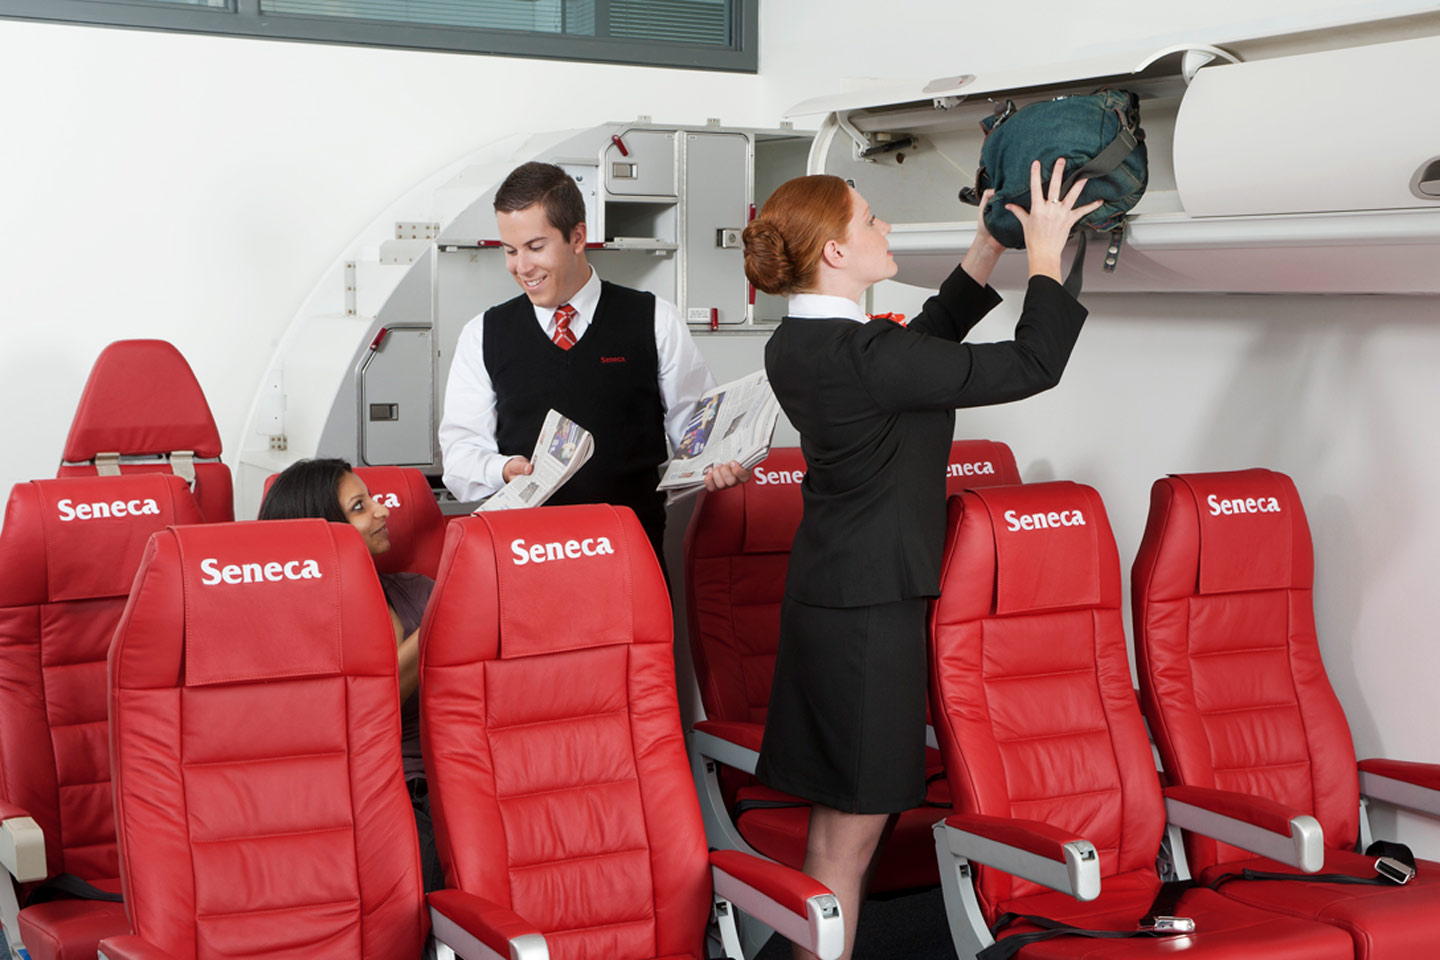 Flight Services: Operations and Cabin Management